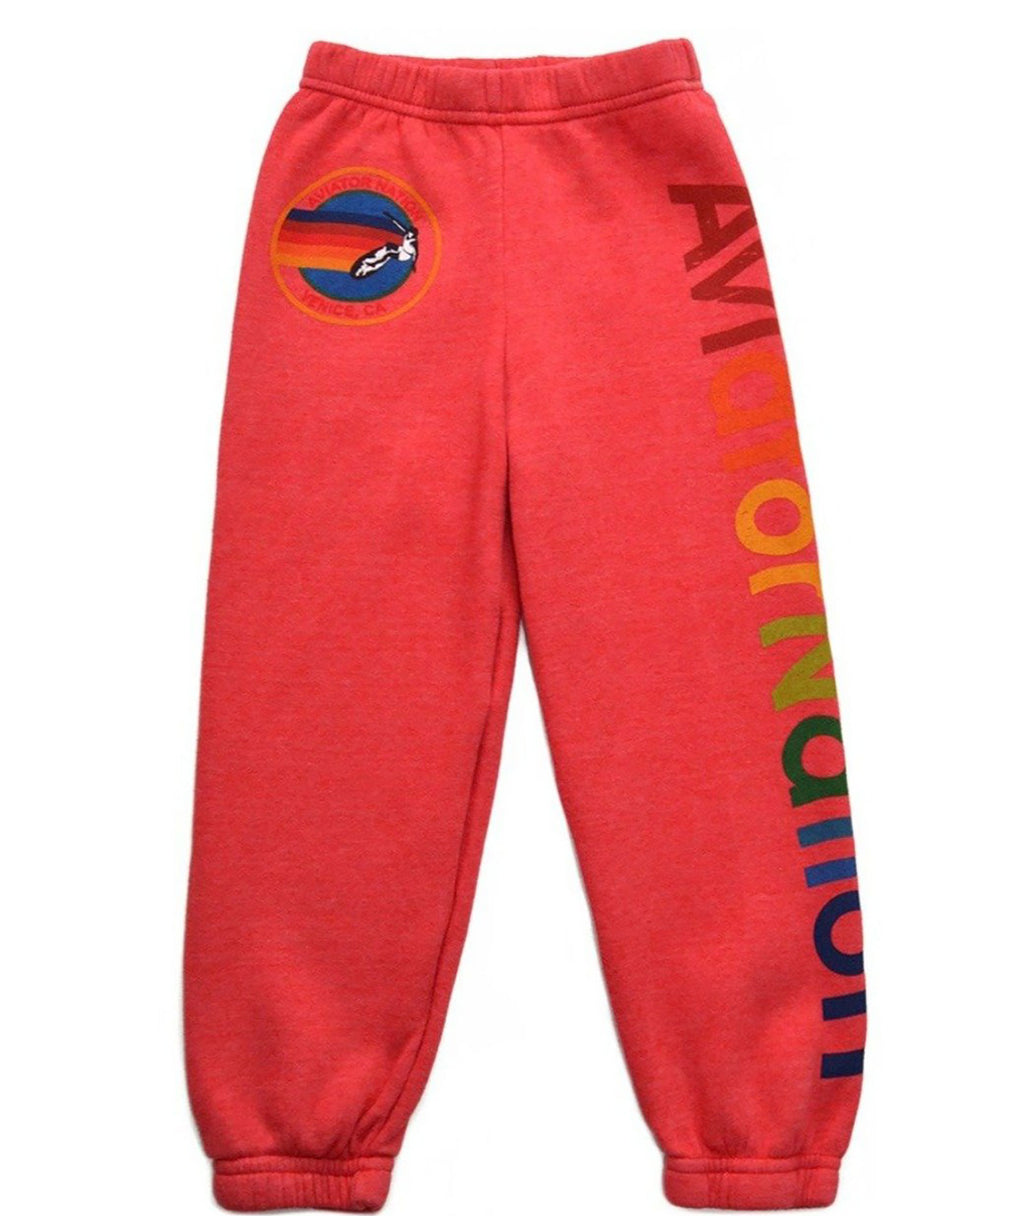 Aviator Nation Girls Neon Red Sweatpants